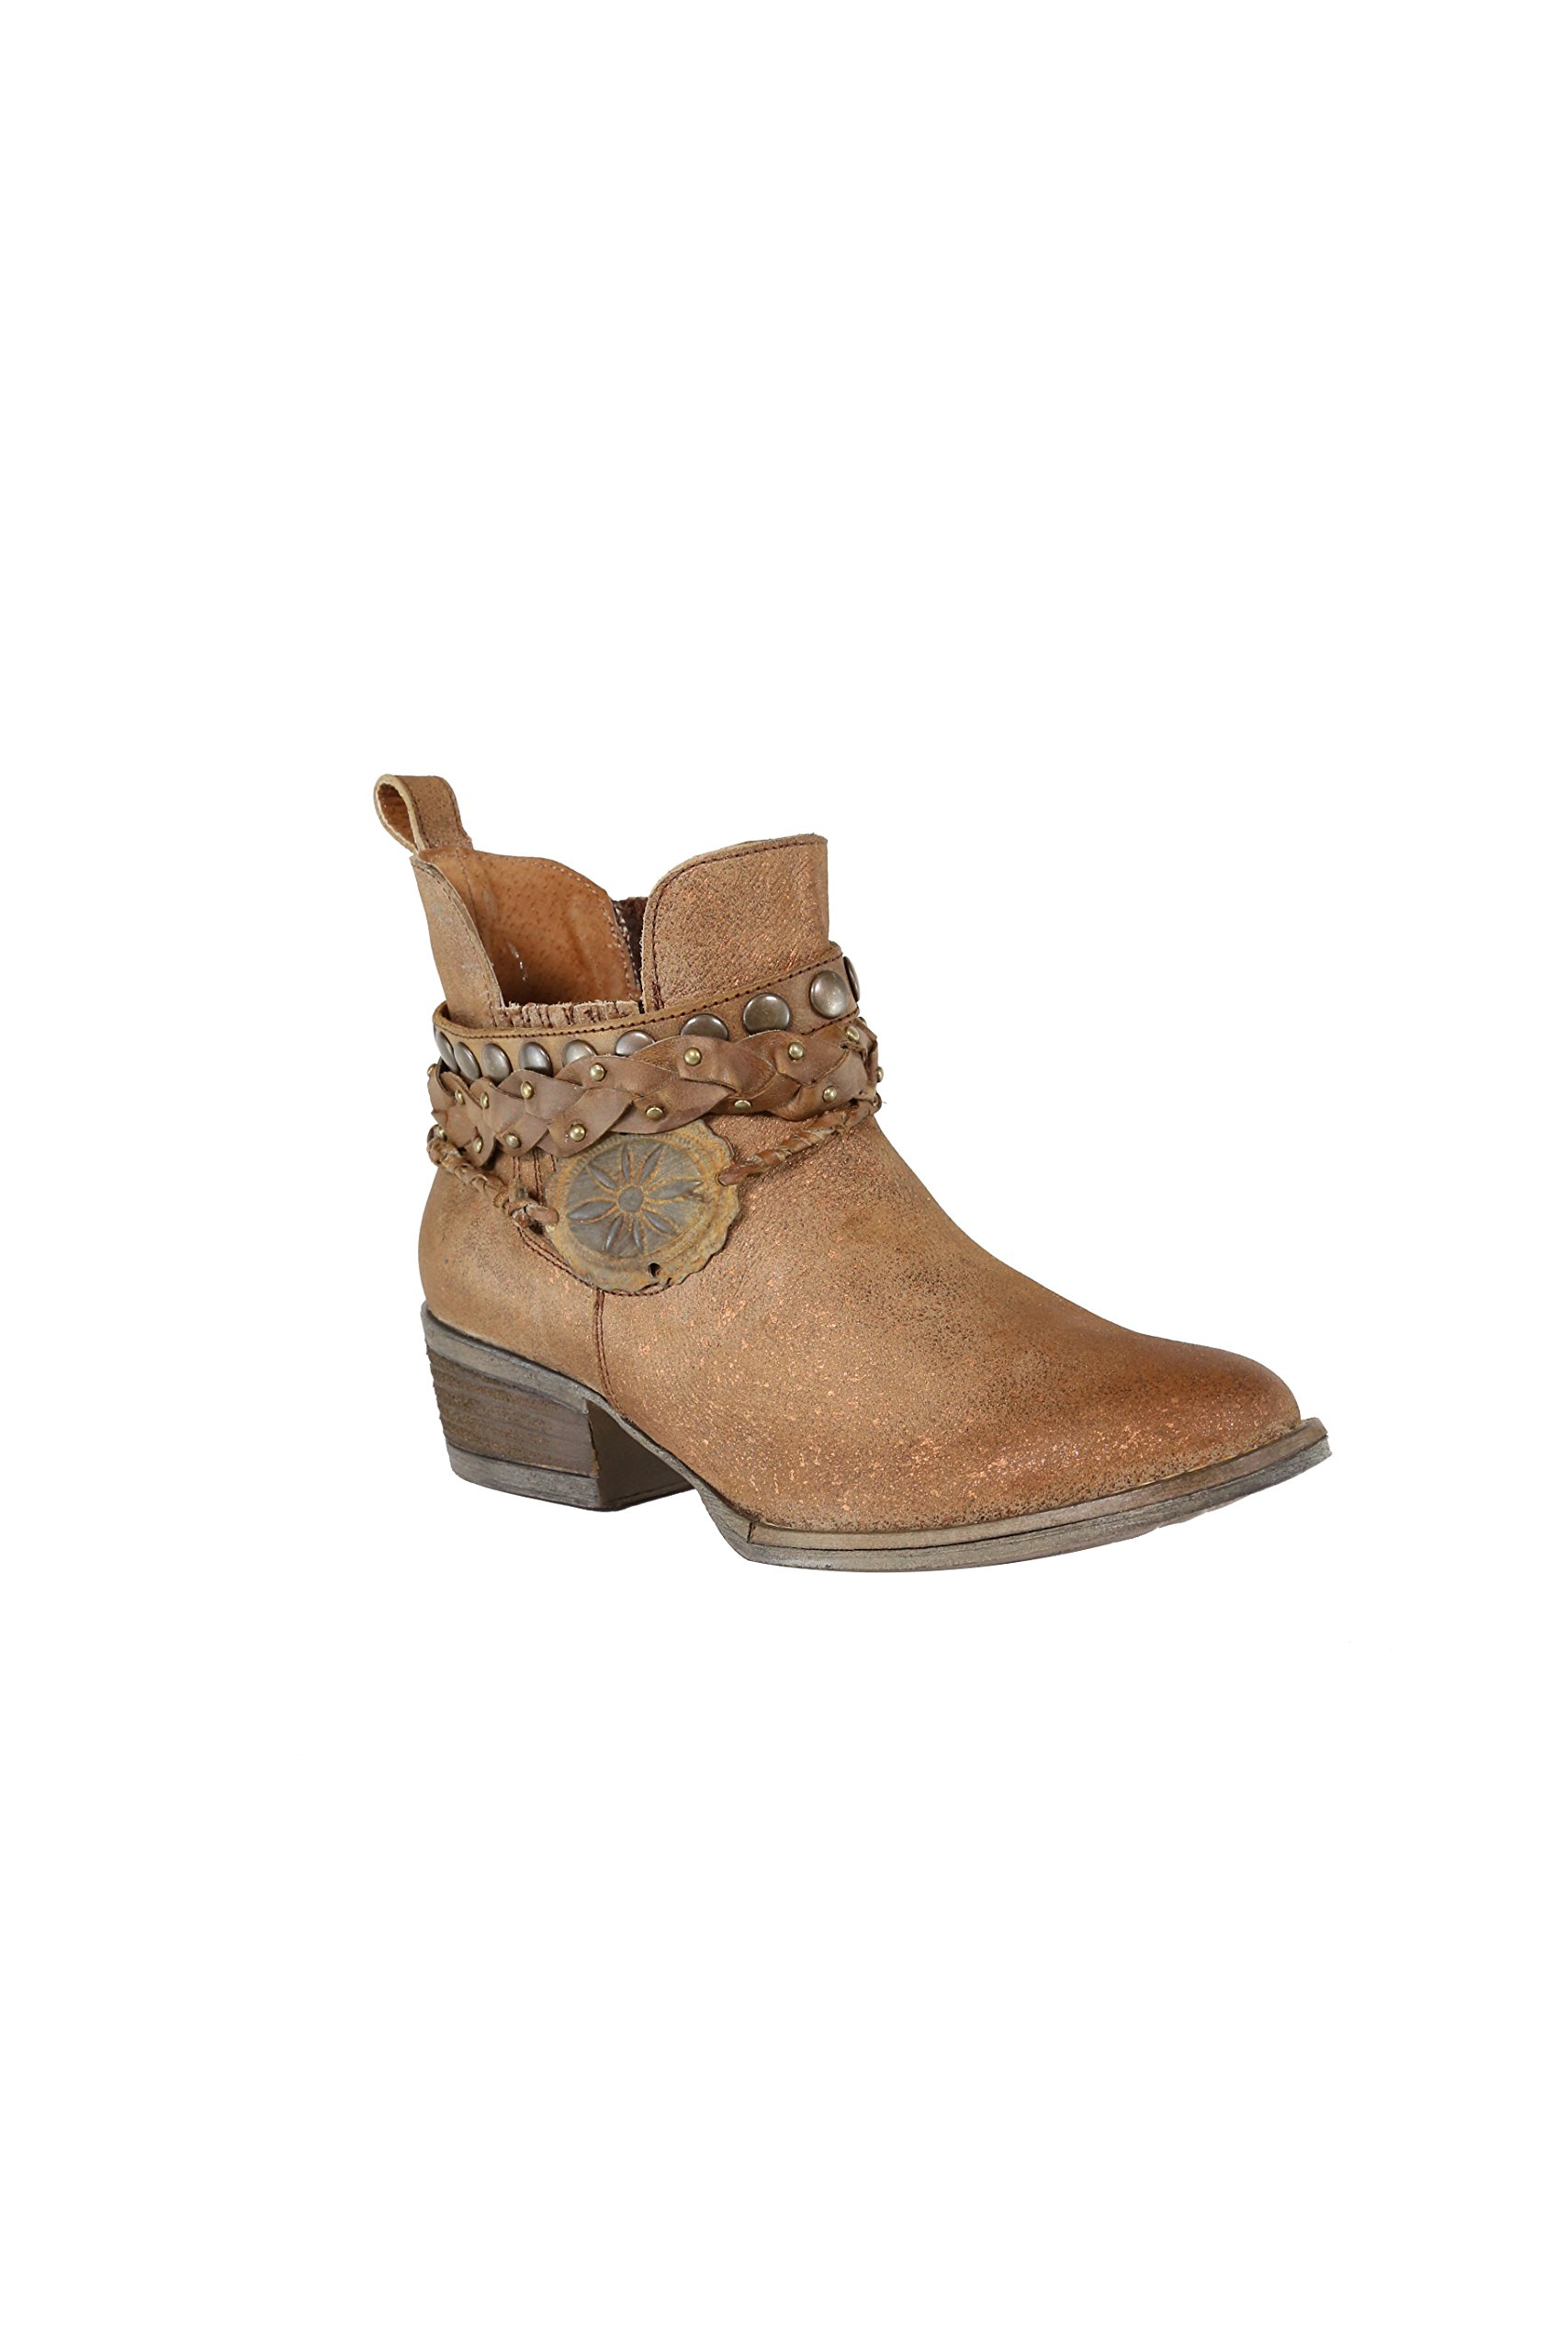 Corral Boots Women's Q5003 Brown 8 B US